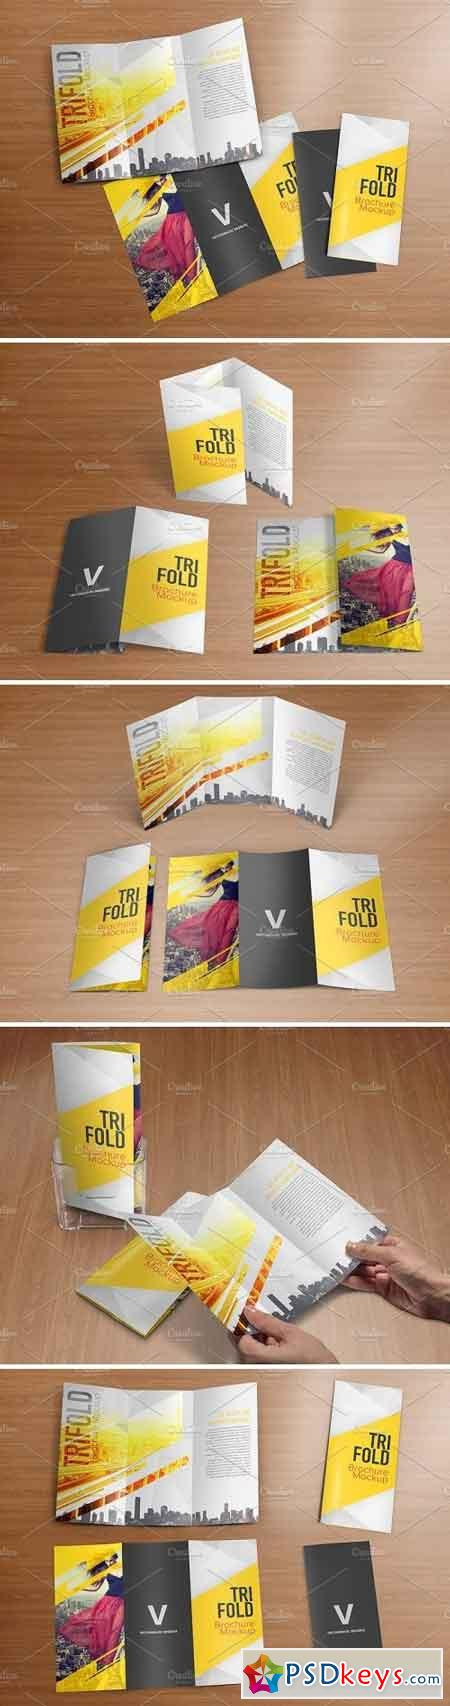 Realistic Trifold Brochure Mockups 1590629